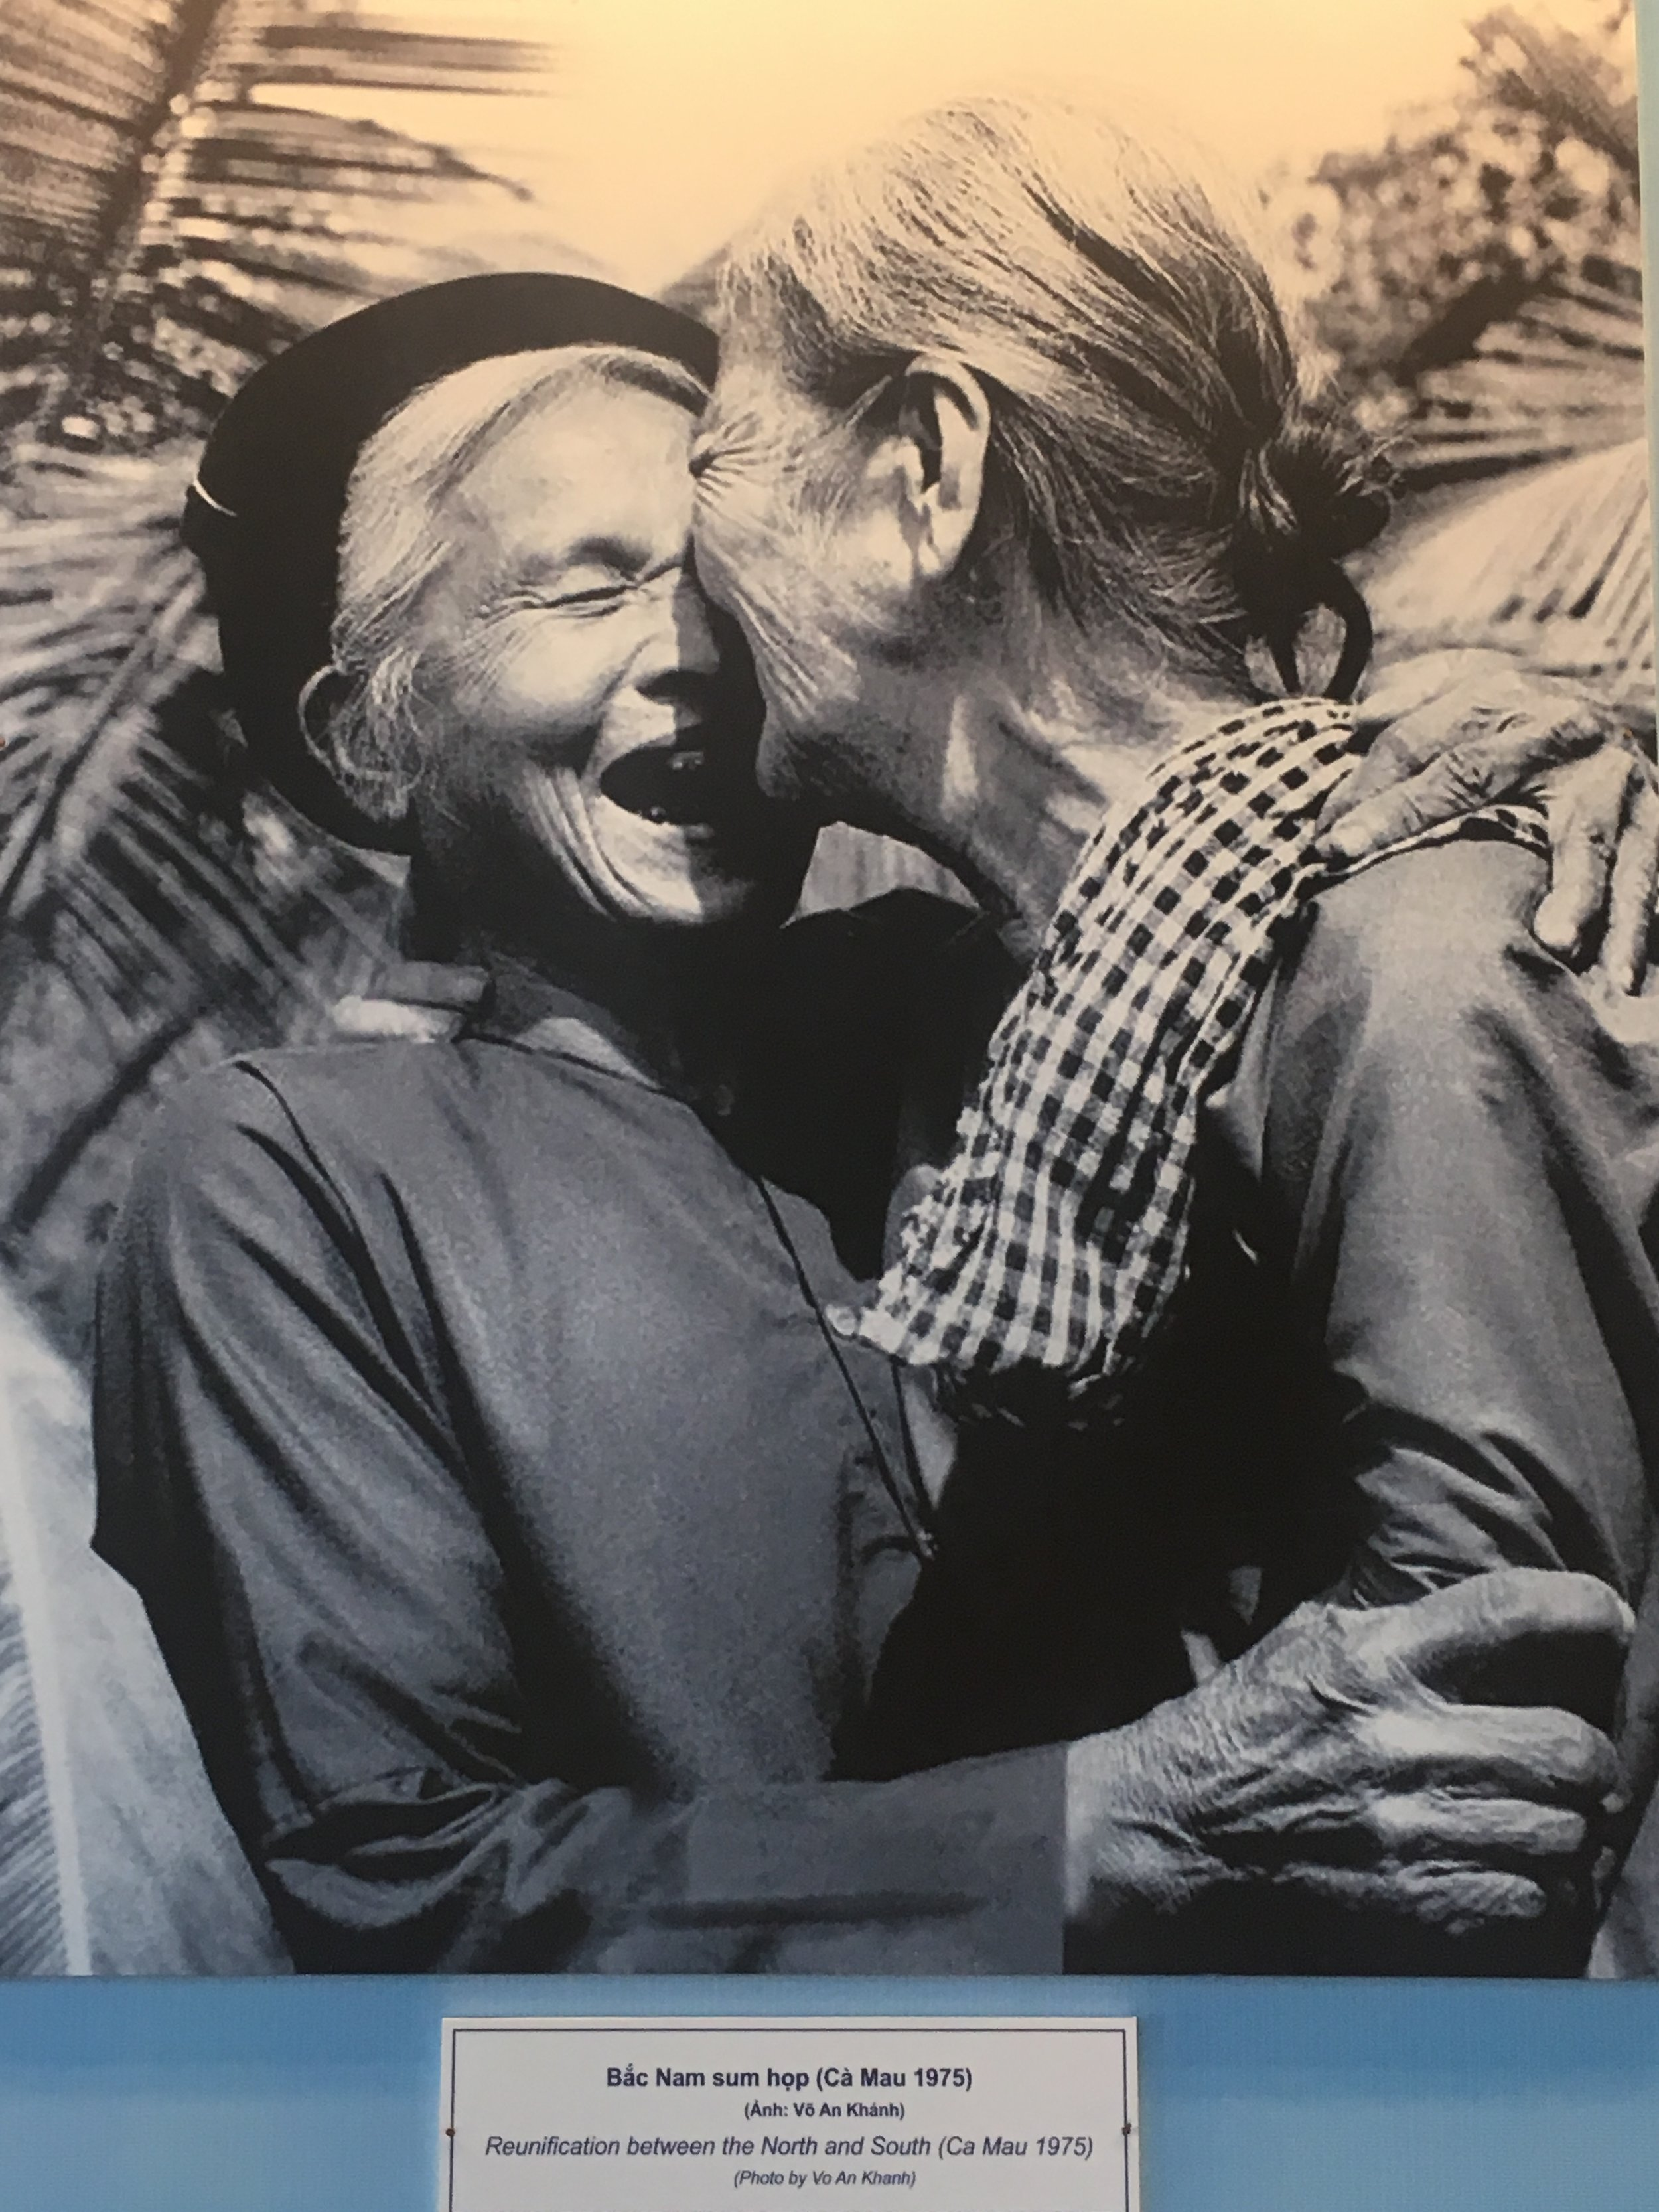 Two relatives reunite after the war